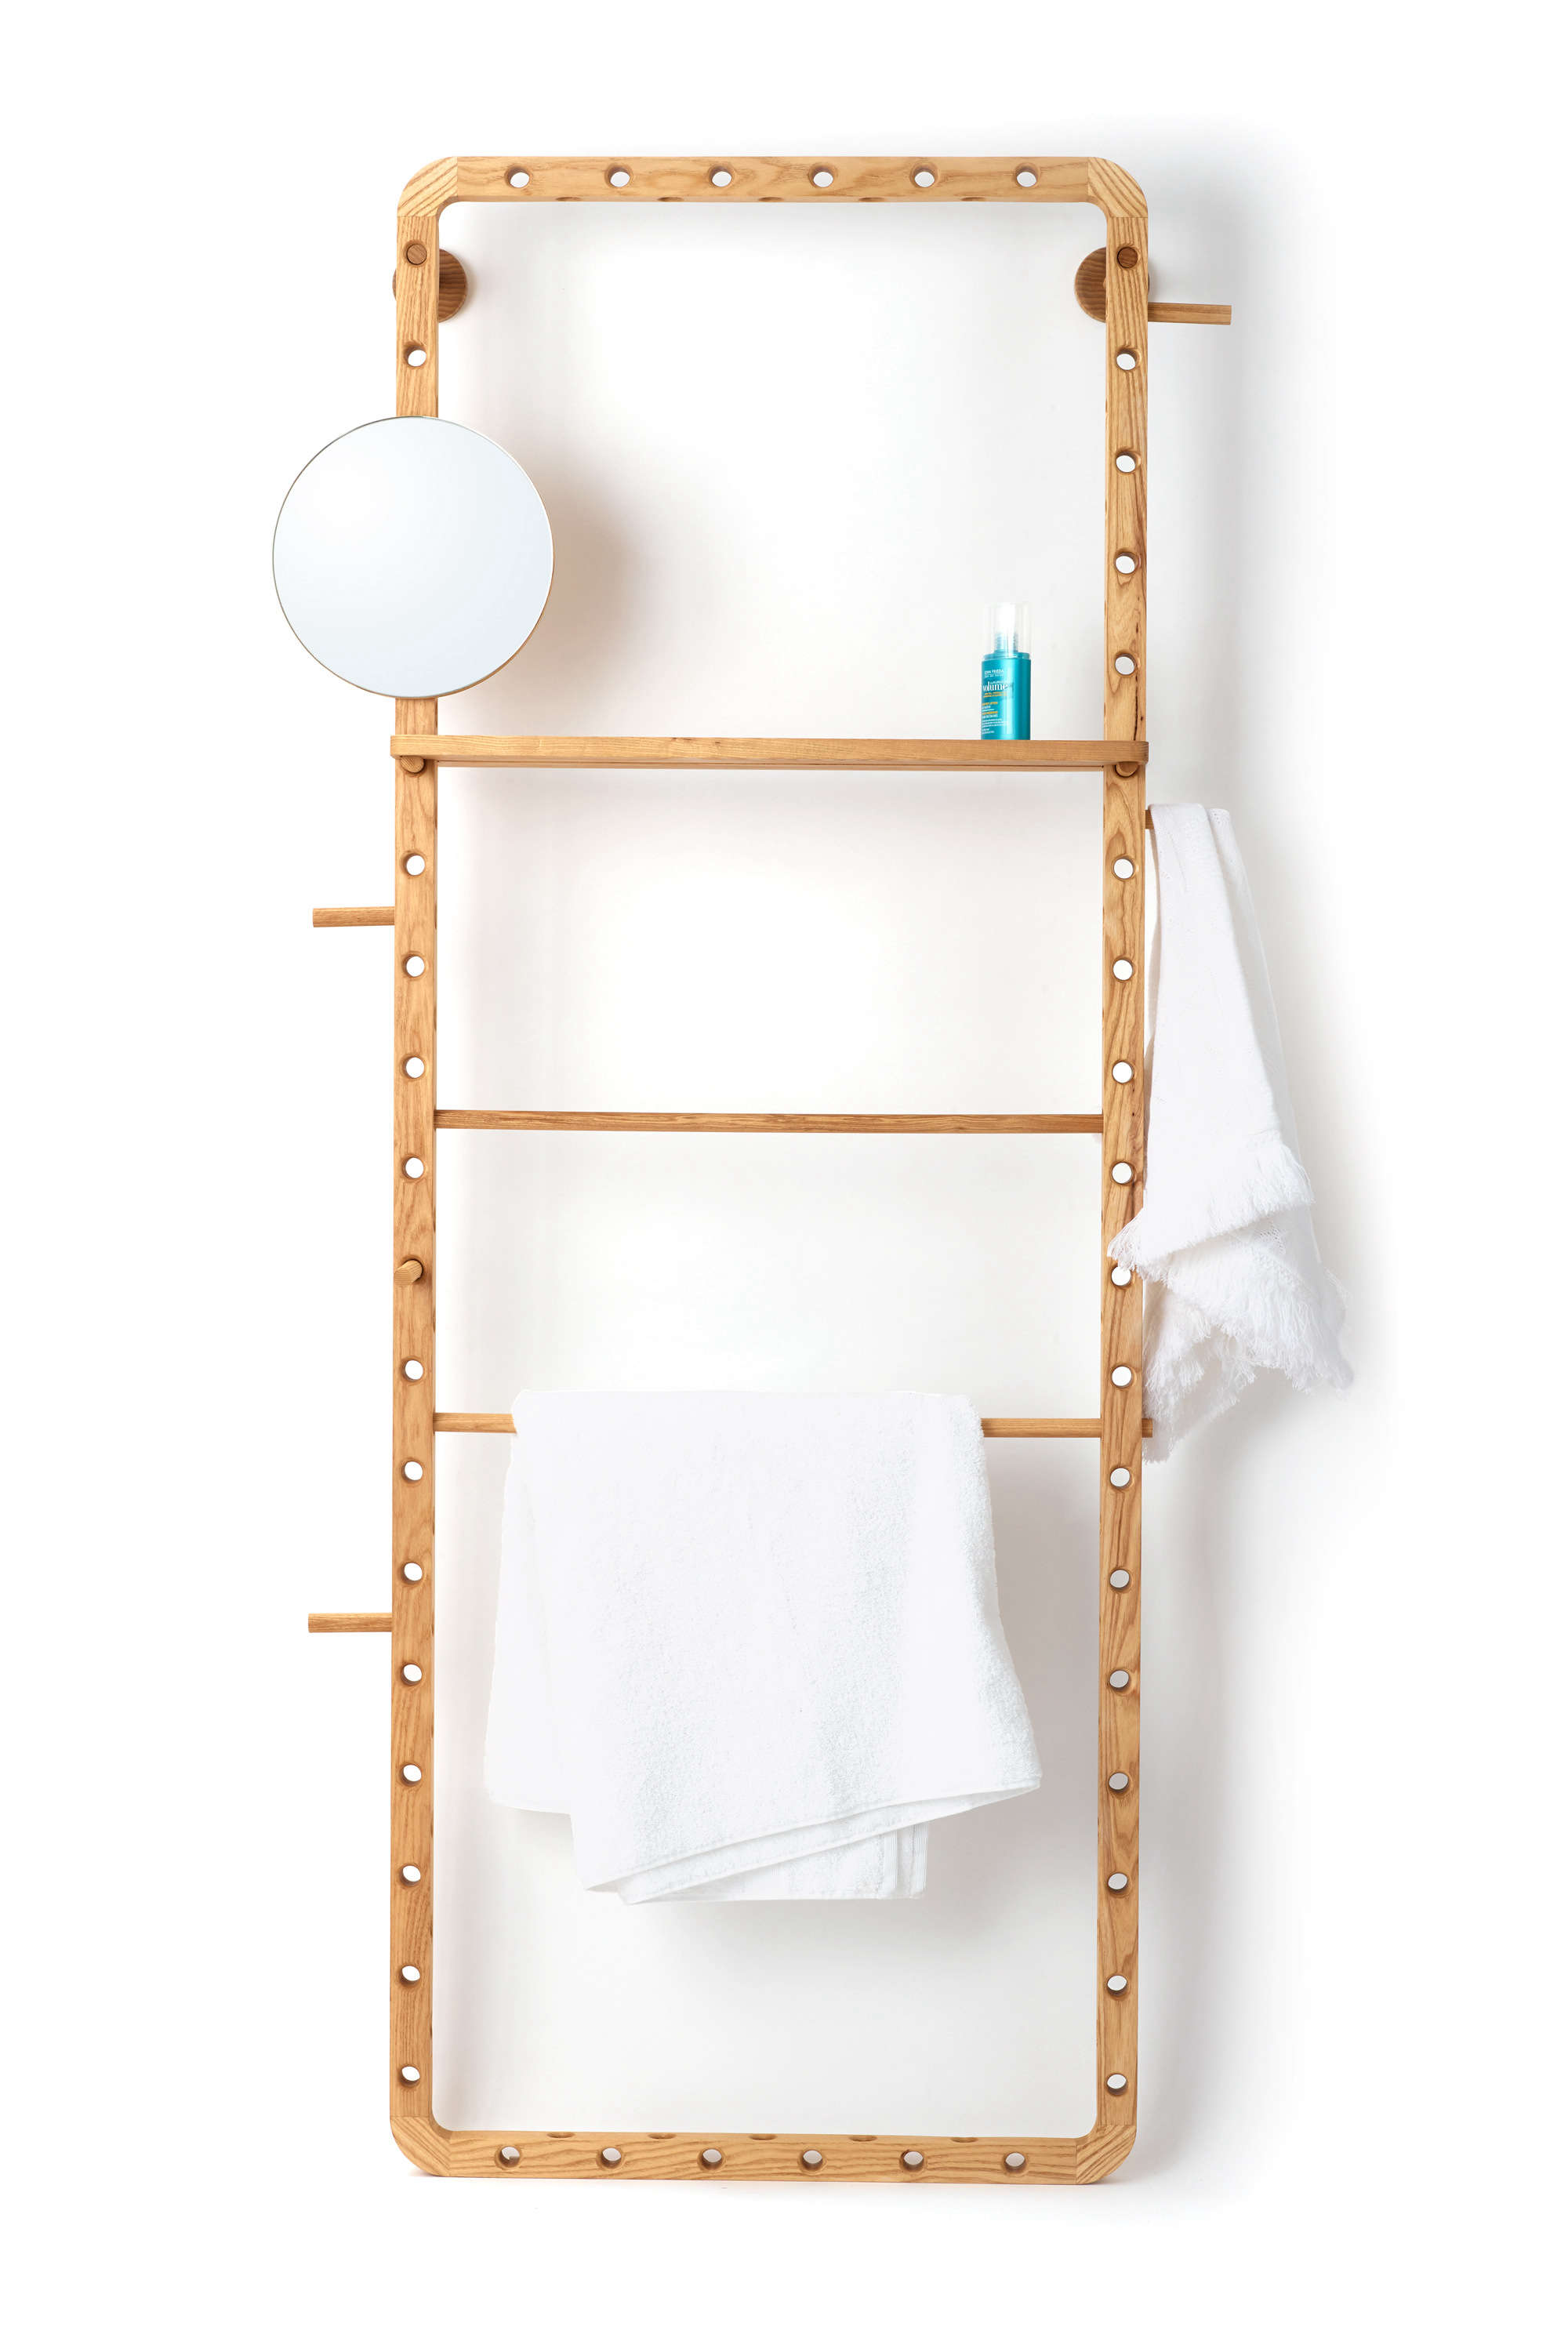 Dotdotdot.Frame modular storage for the bathroom and beyond.